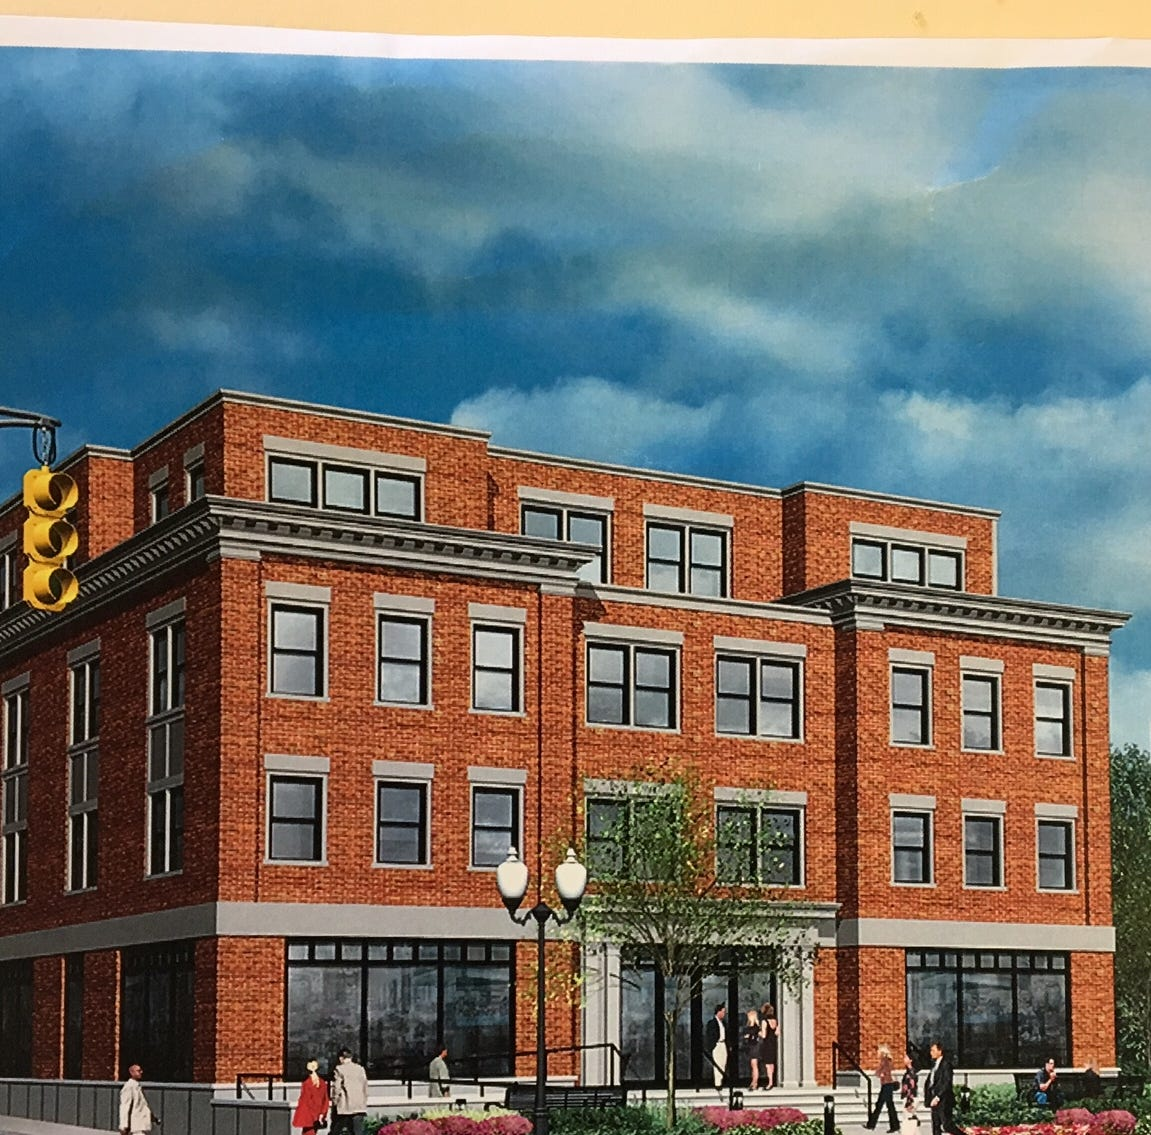 Apartments, new restaurant planned for bankrupt Calaloo Cafe site in Morristown